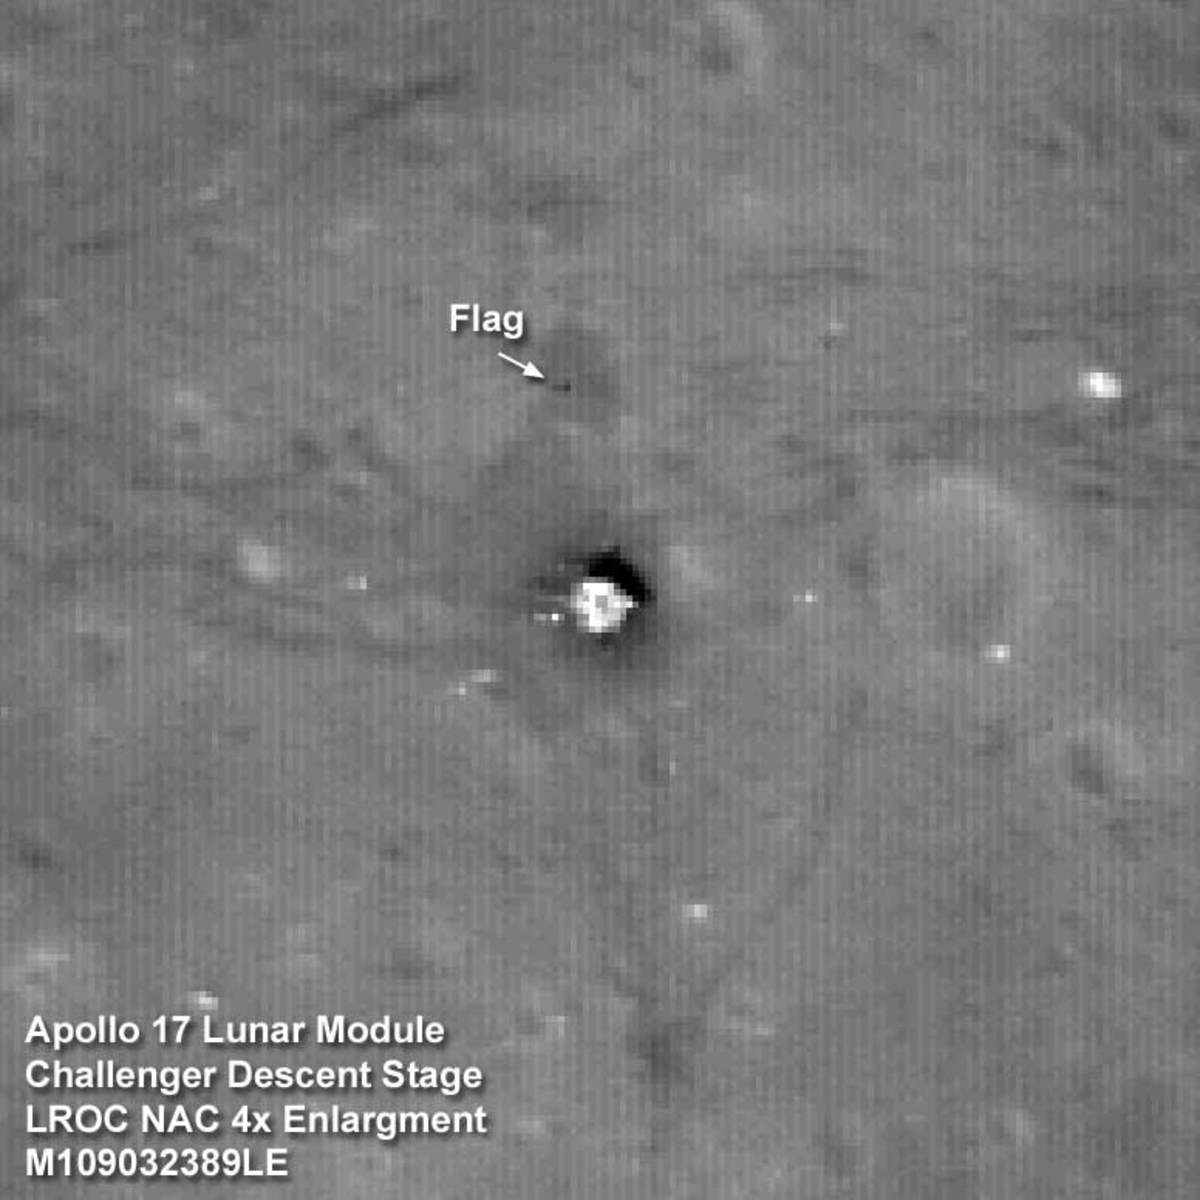 September 2009: Magnification of previous image.